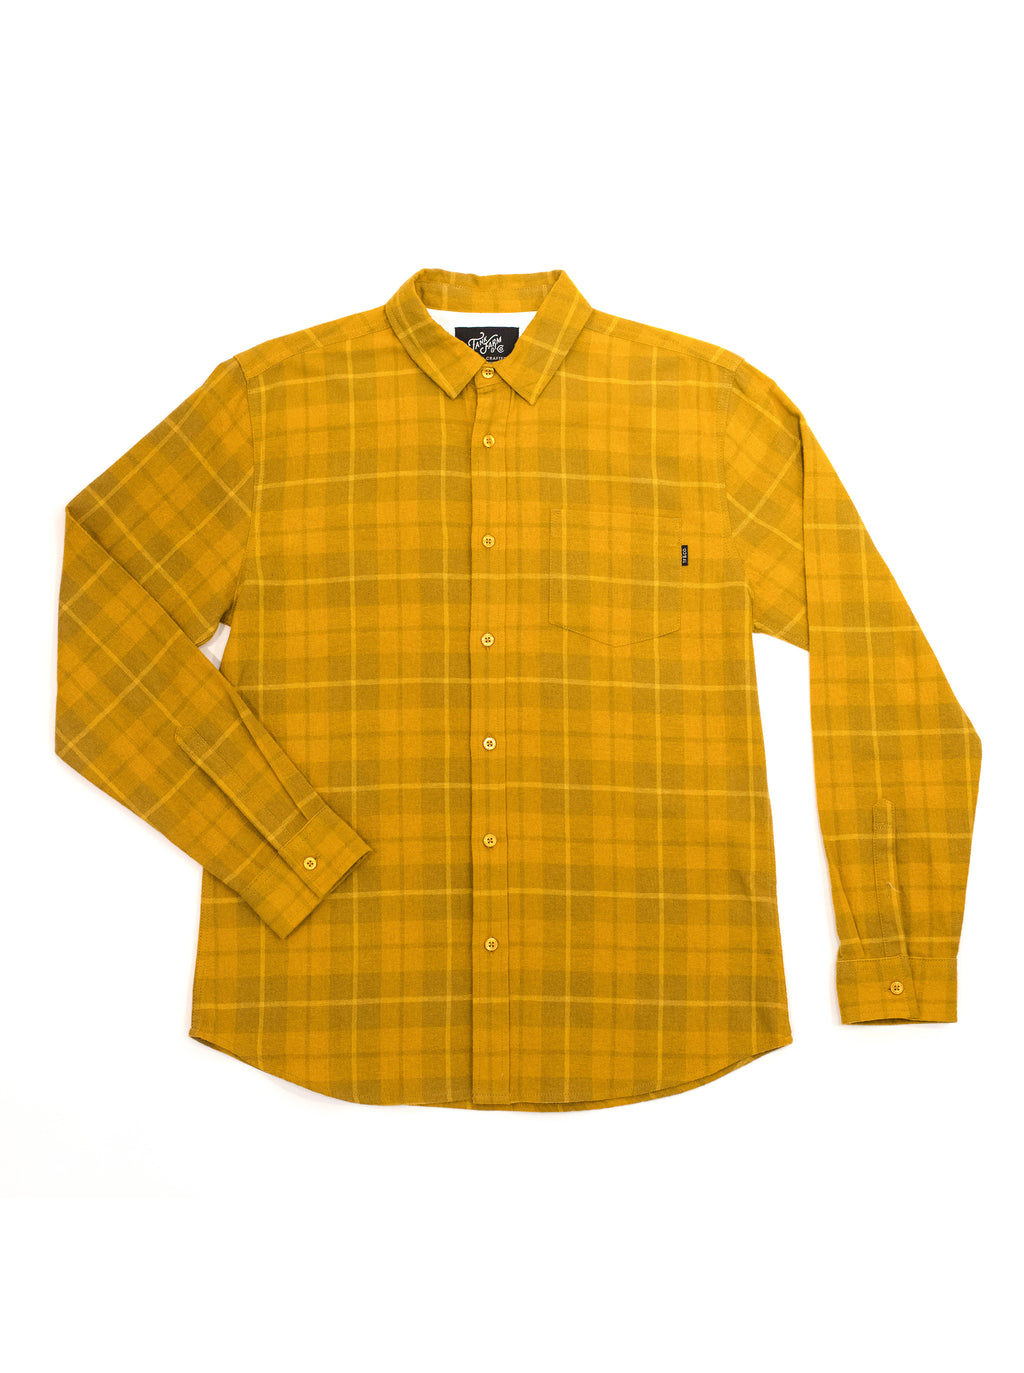 ABDS FLANNEL YELLOW - Anderson Bros Design and Supply